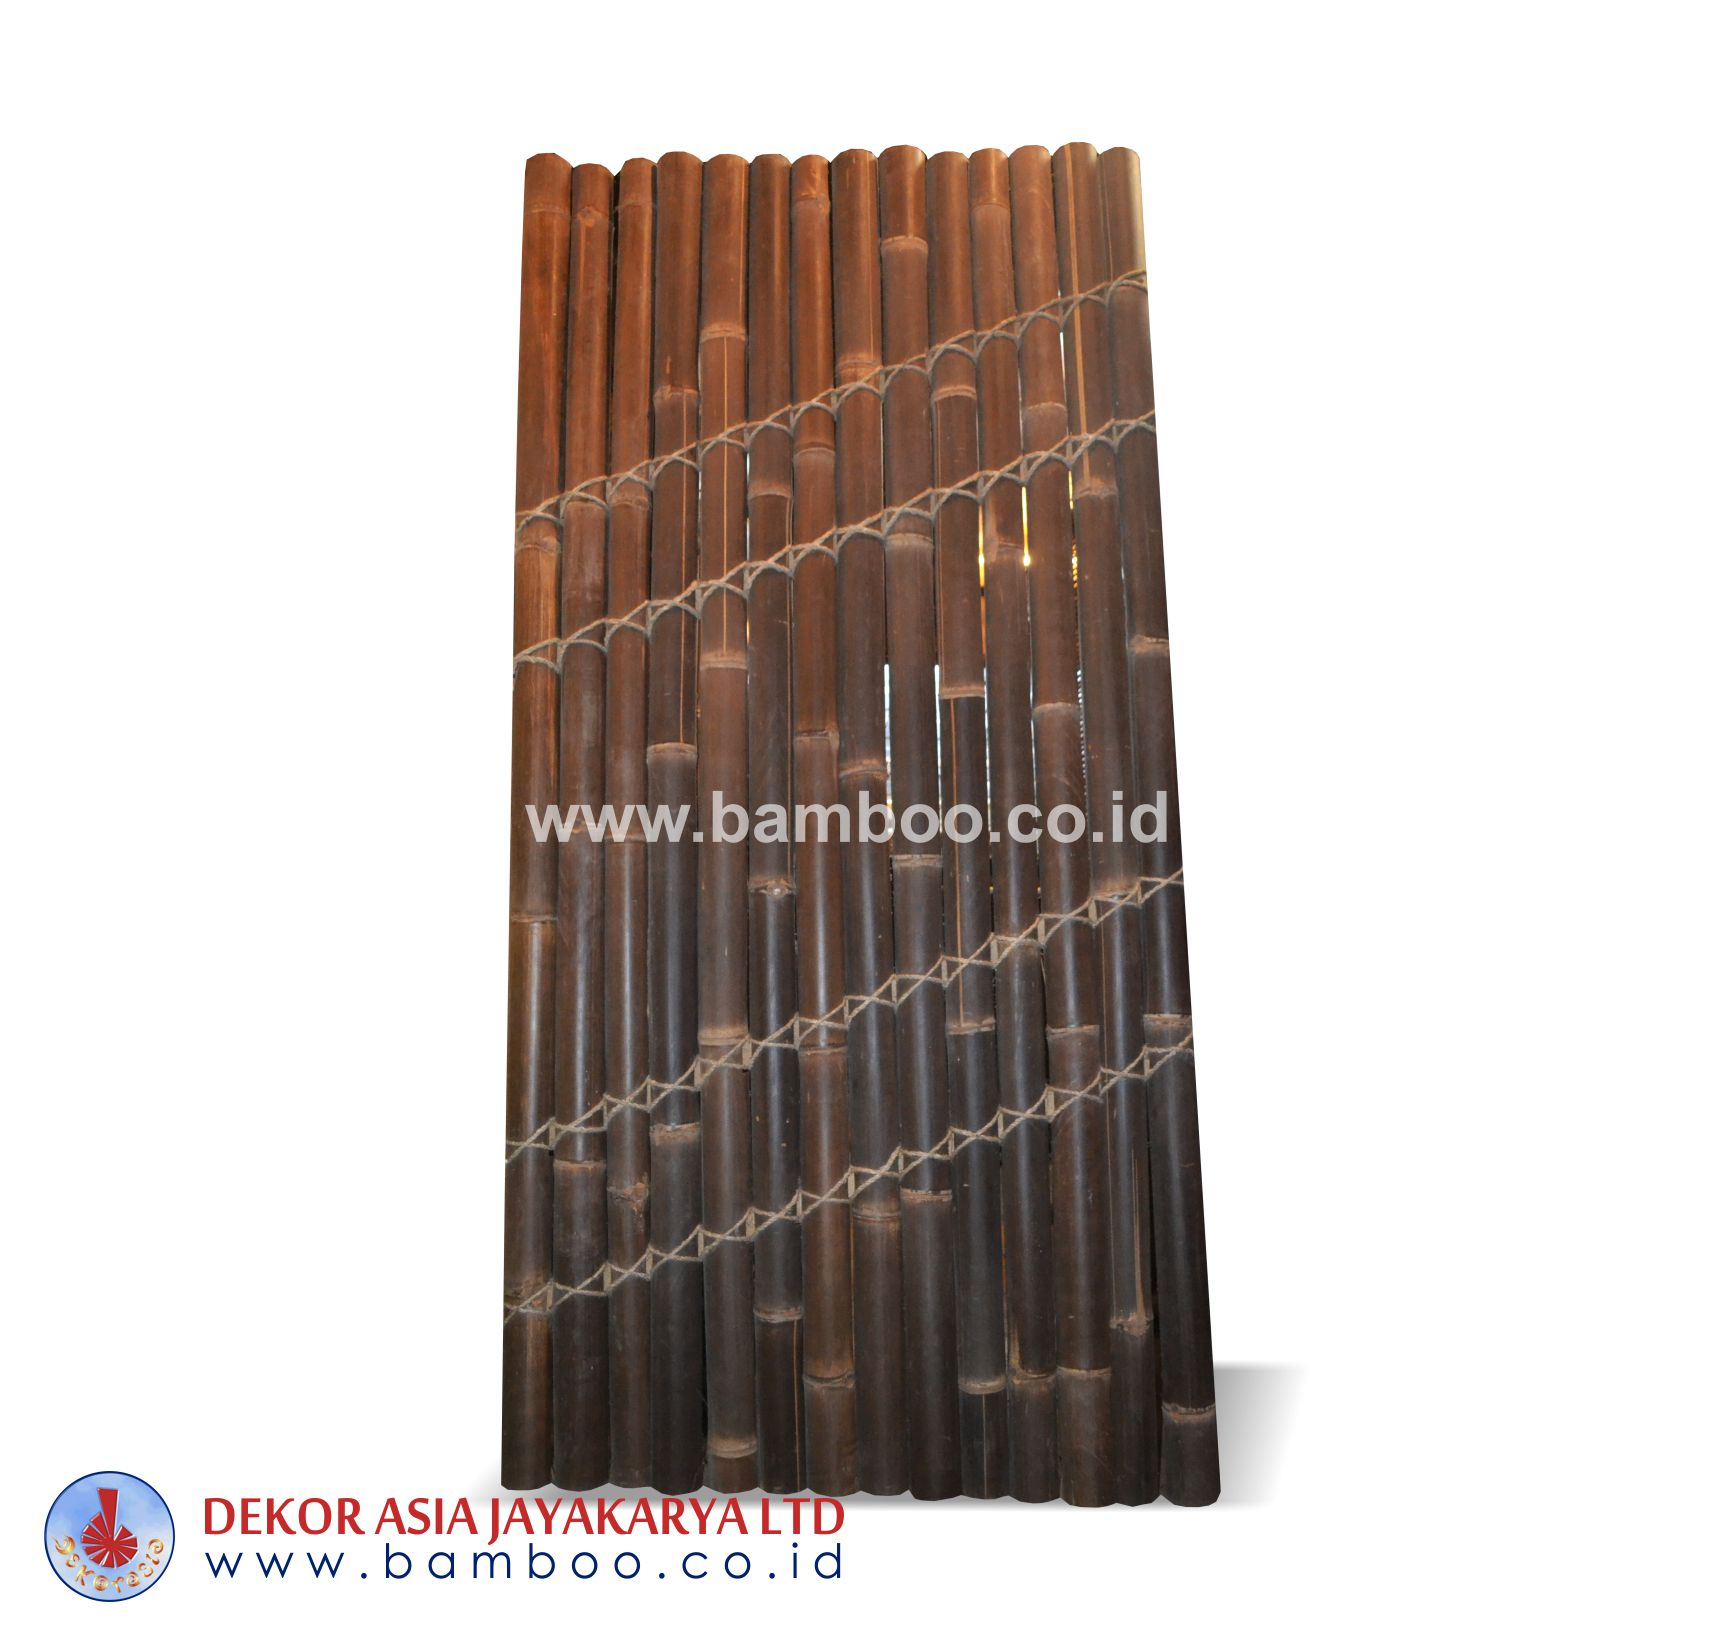 Half cut bamboo fence 4 back slats black coco rope